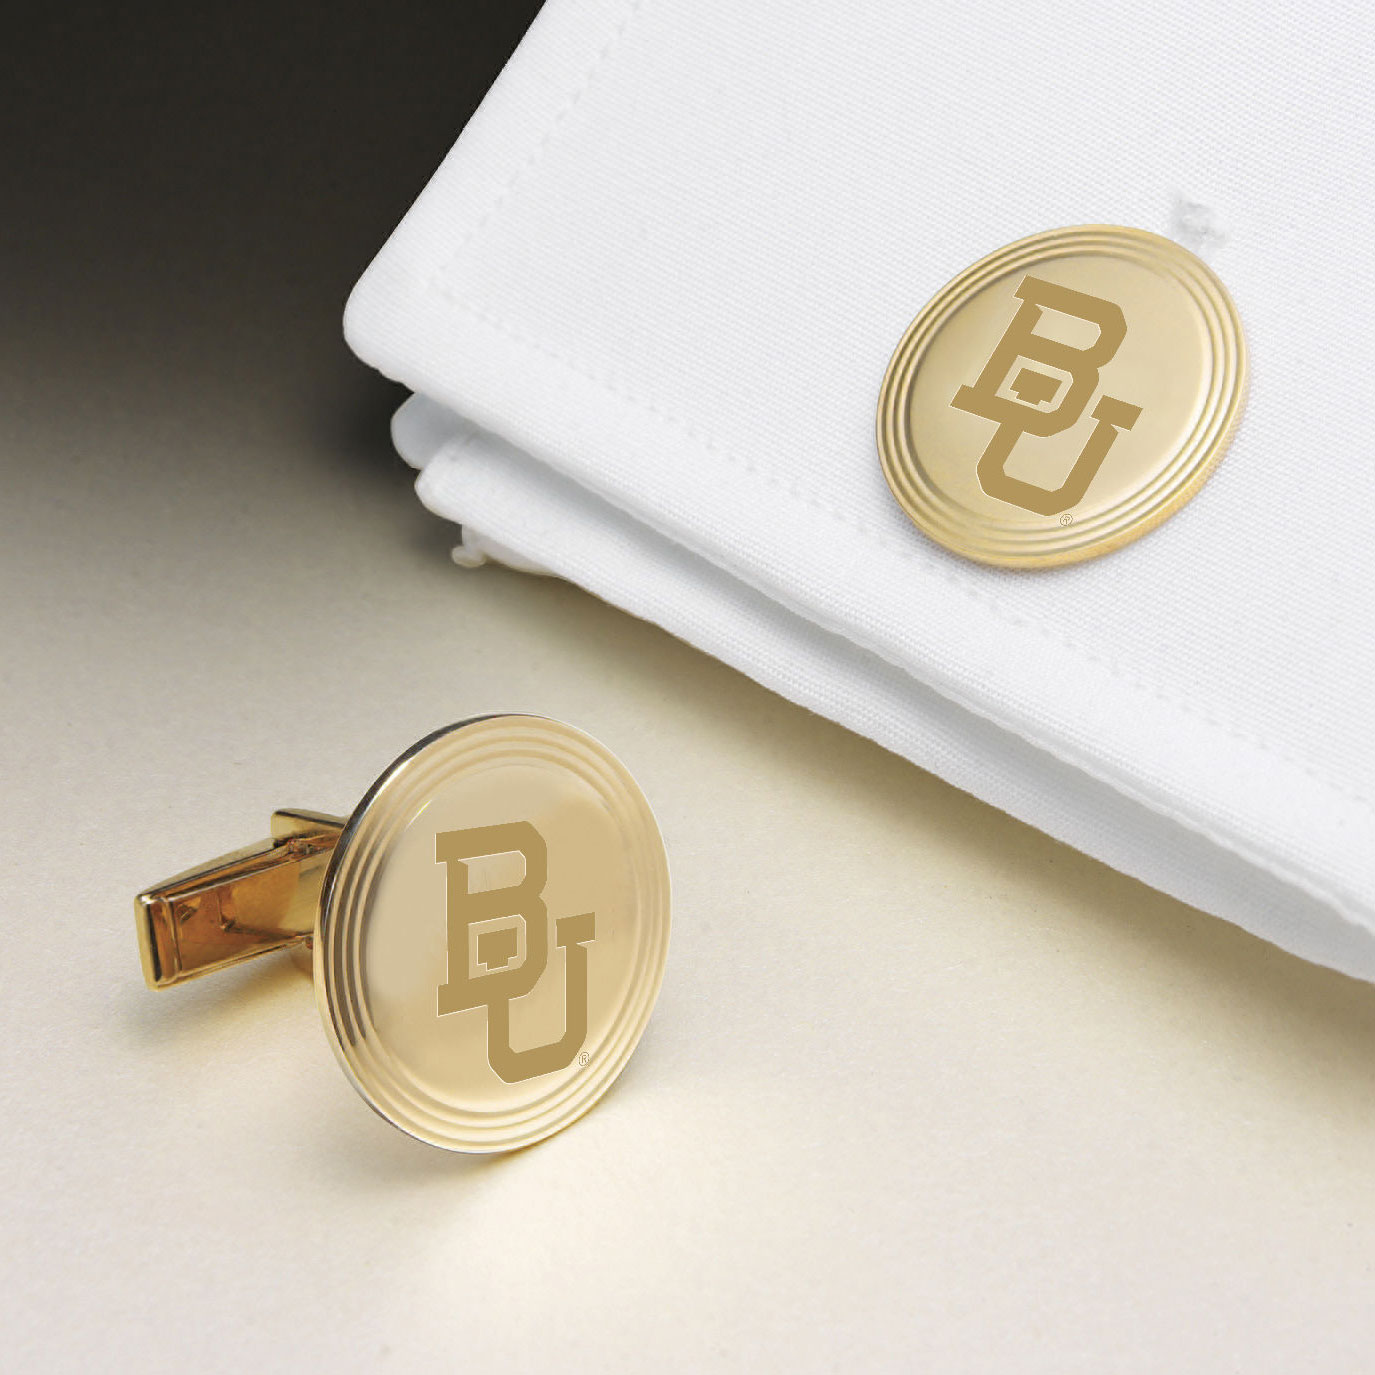 Baylor 18K Gold Cufflinks